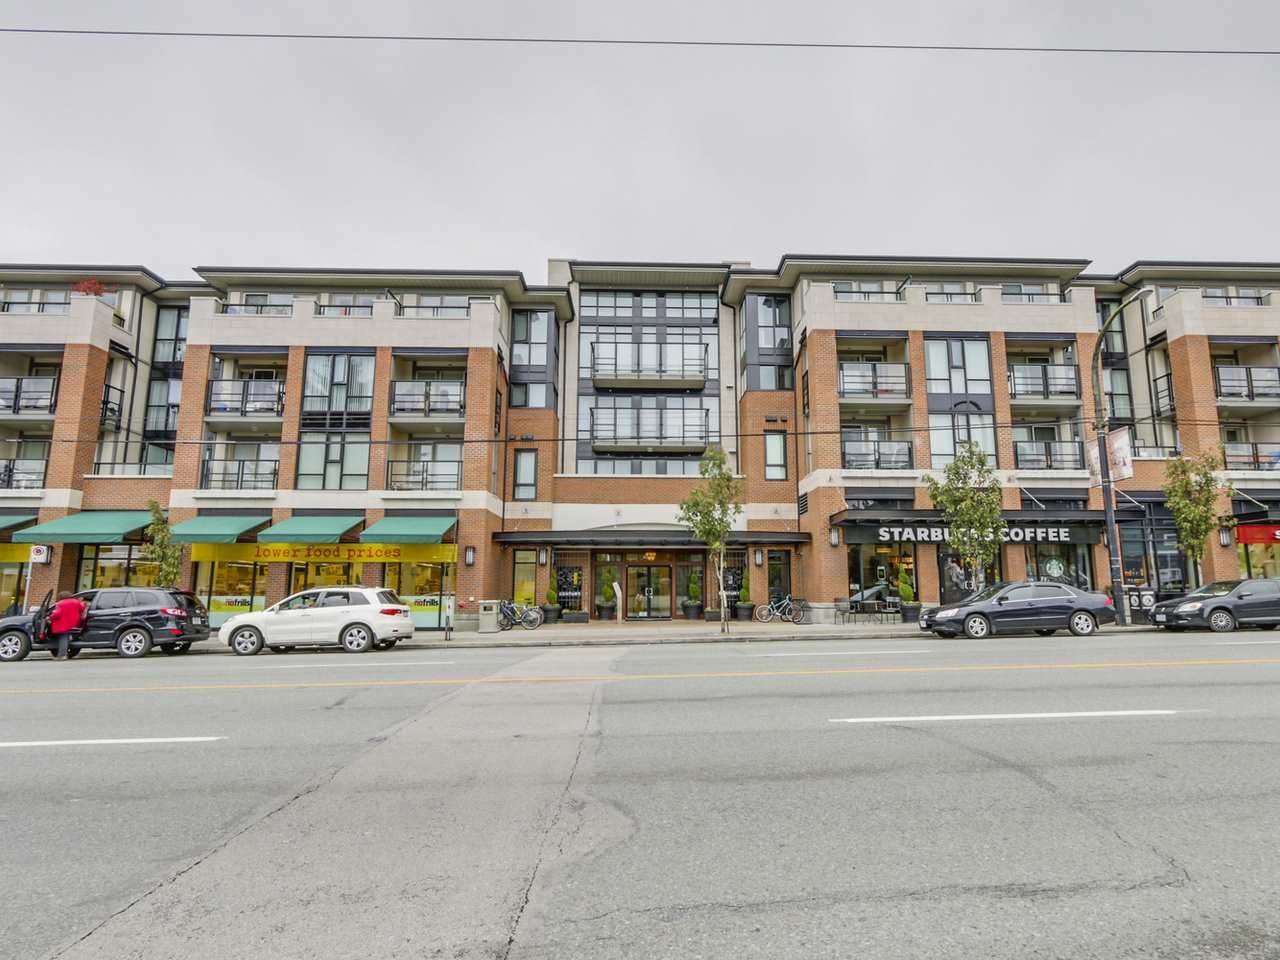 """Main Photo: 309 4550 FRASER Street in Vancouver: Fraser VE Condo for sale in """"THE CENTURY"""" (Vancouver East)  : MLS®# R2117523"""